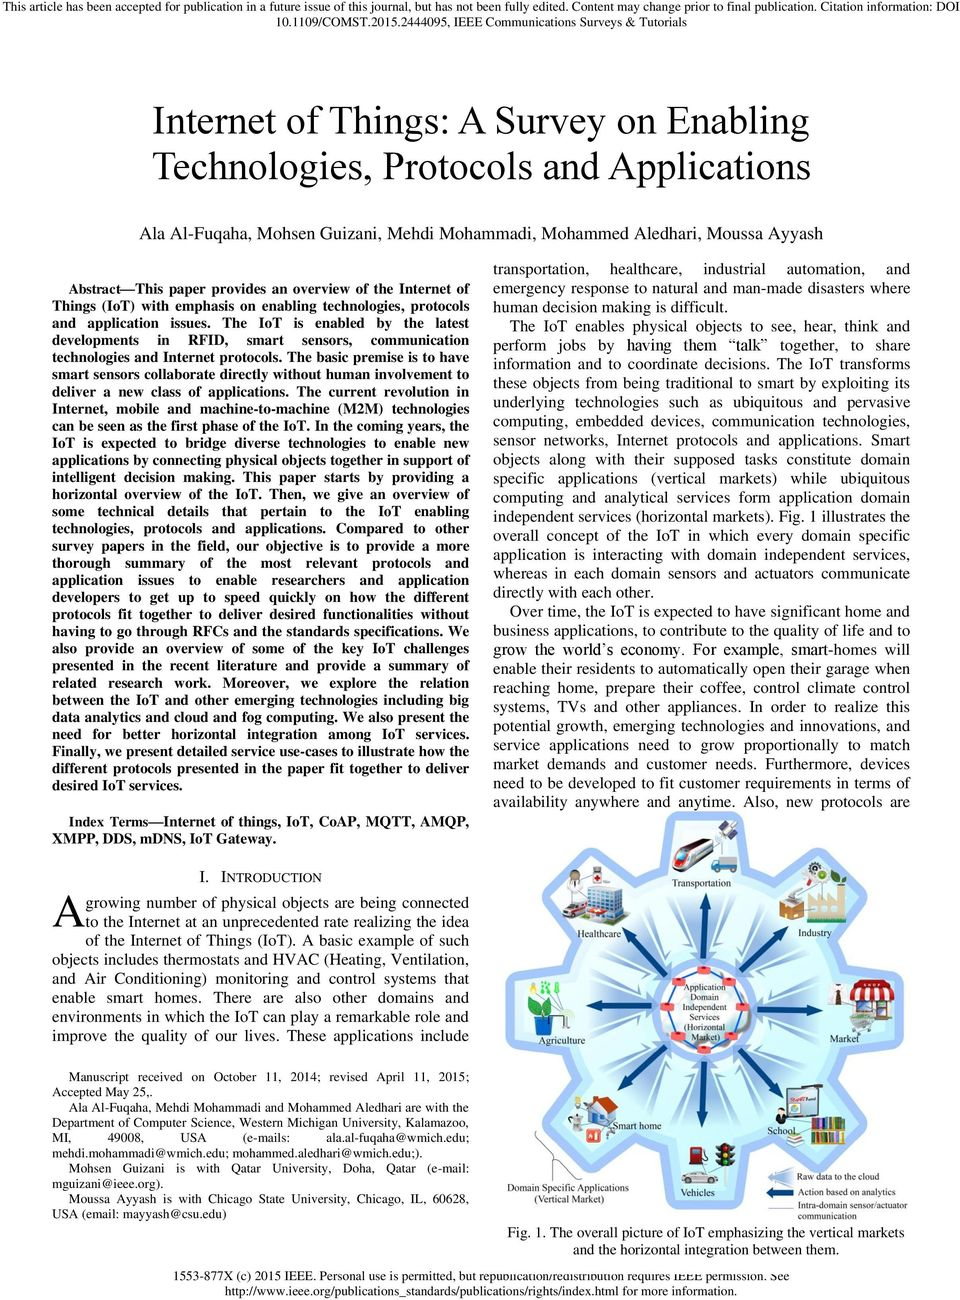 Internet of Things: A Survey on Enabling Technologies, Protocols and